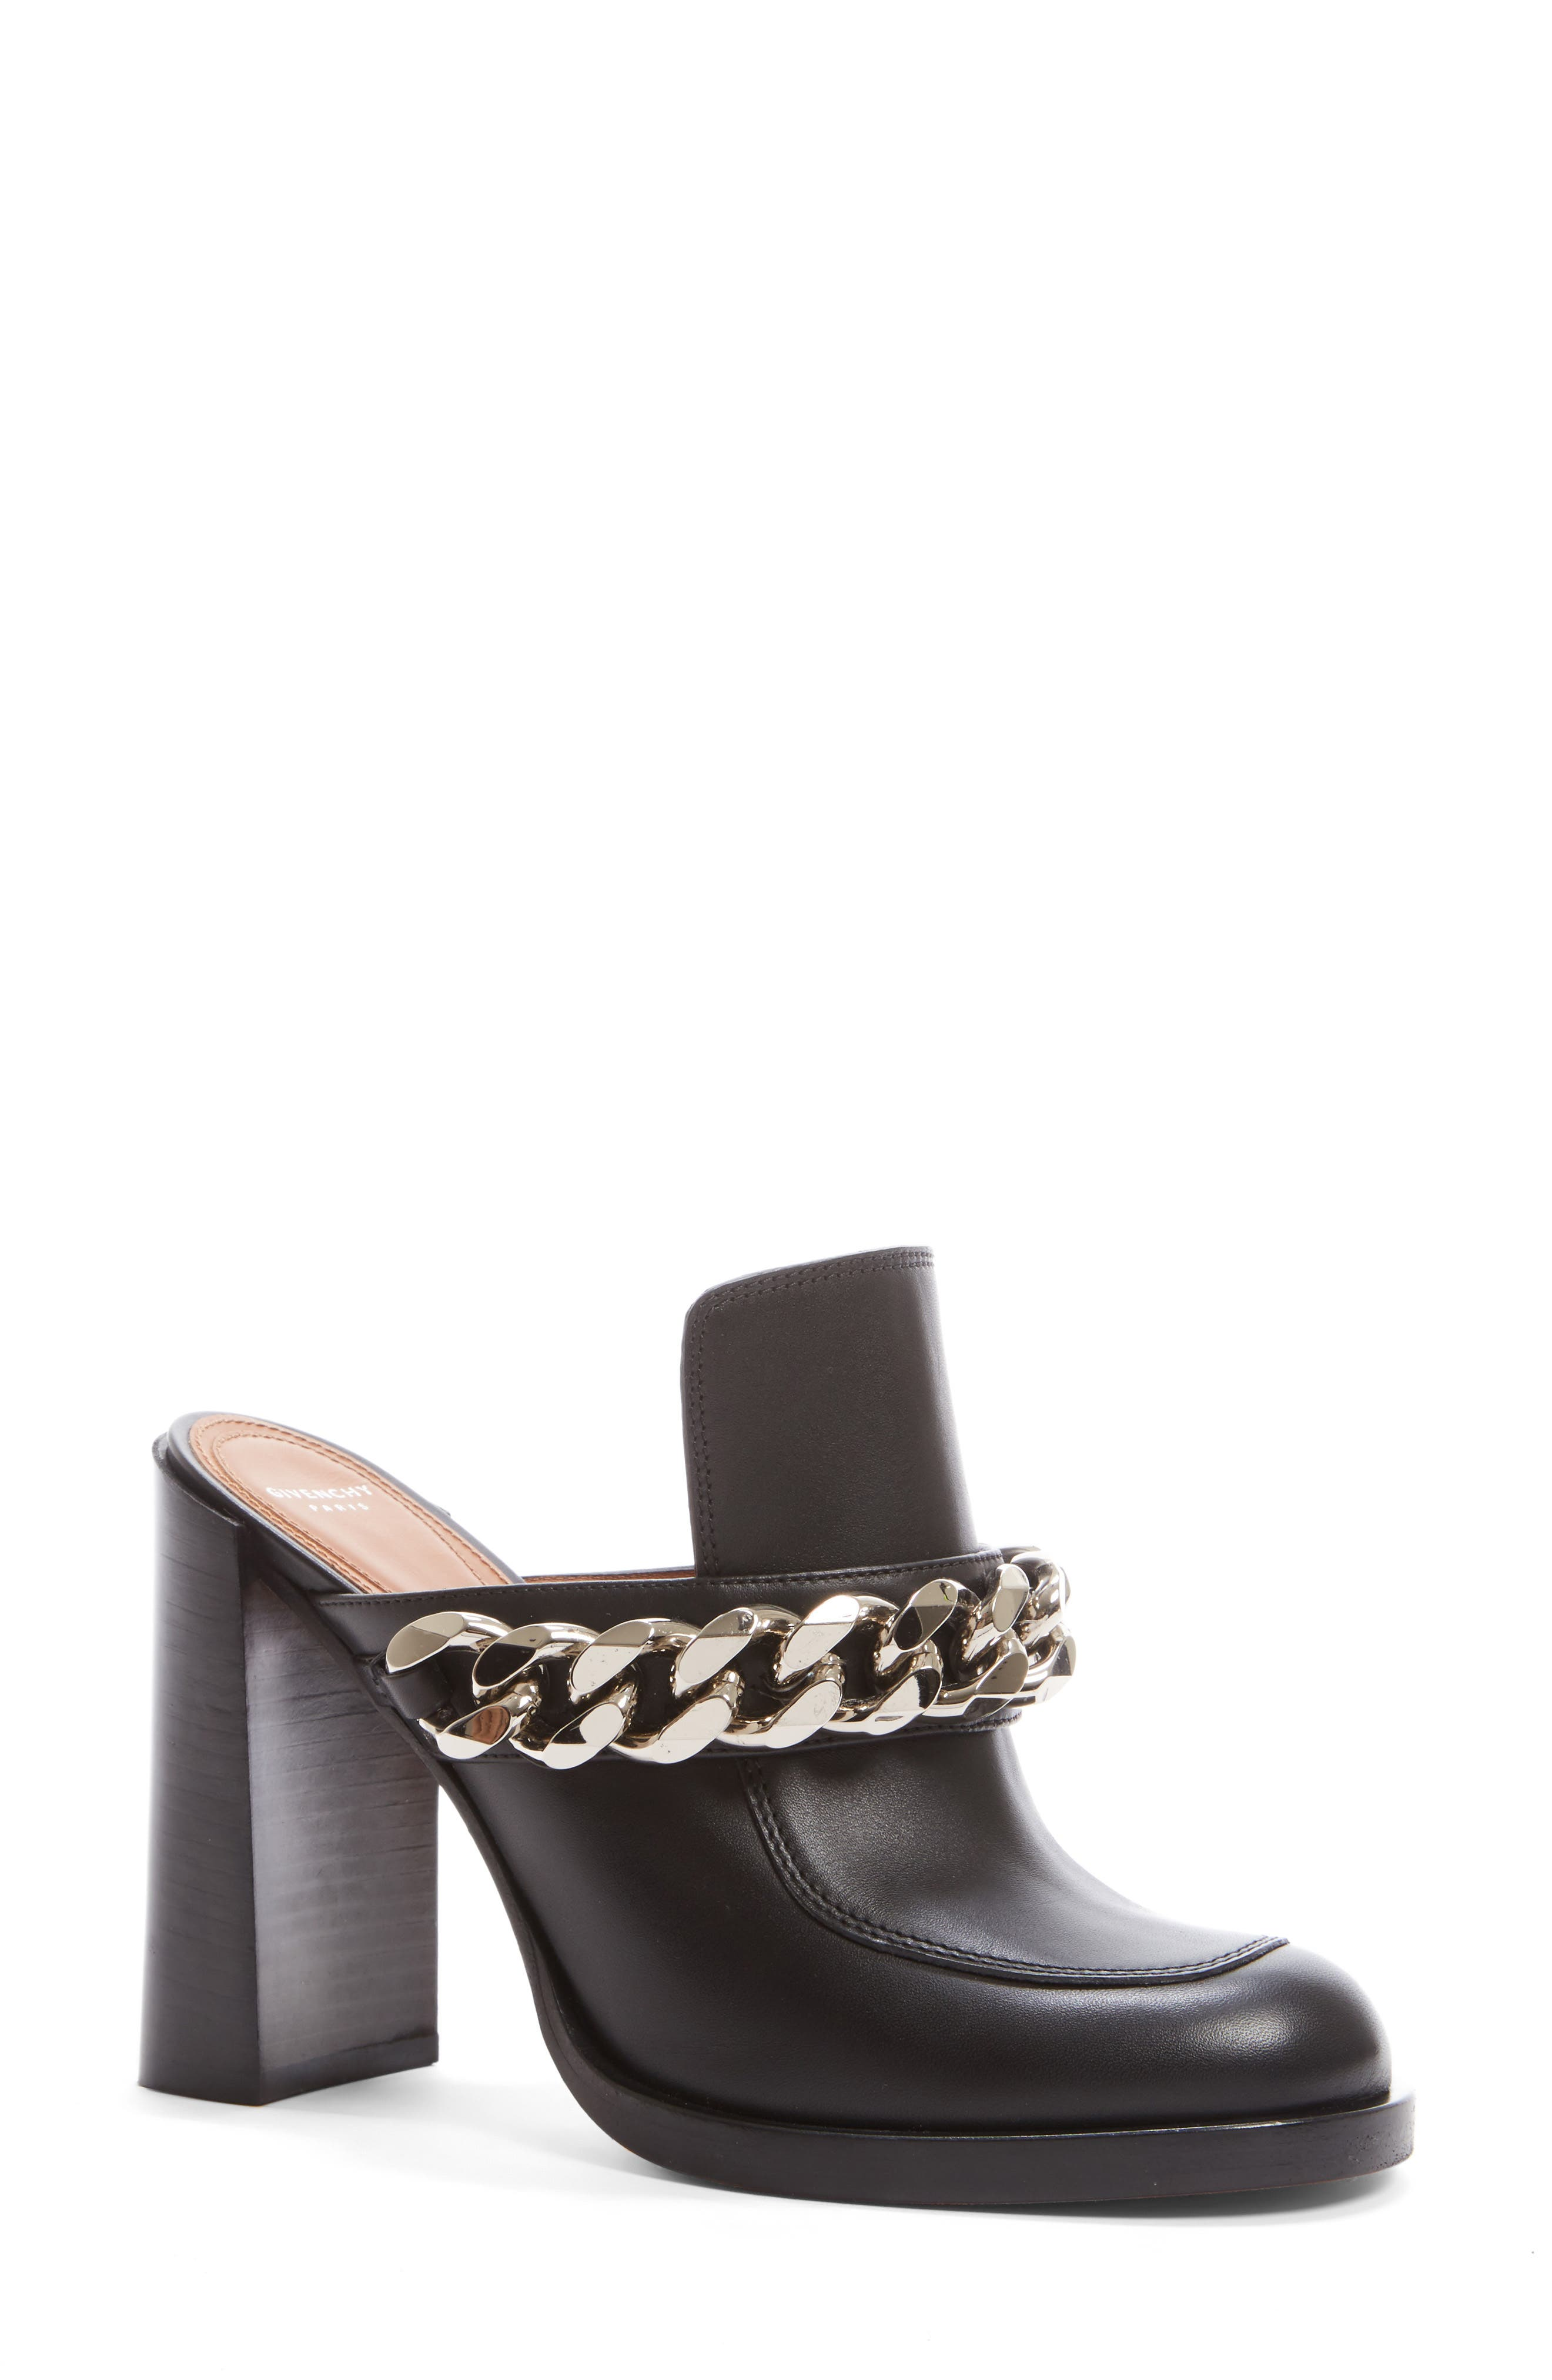 Alternate Image 1 Selected - Givenchy Chain Mule (Women)